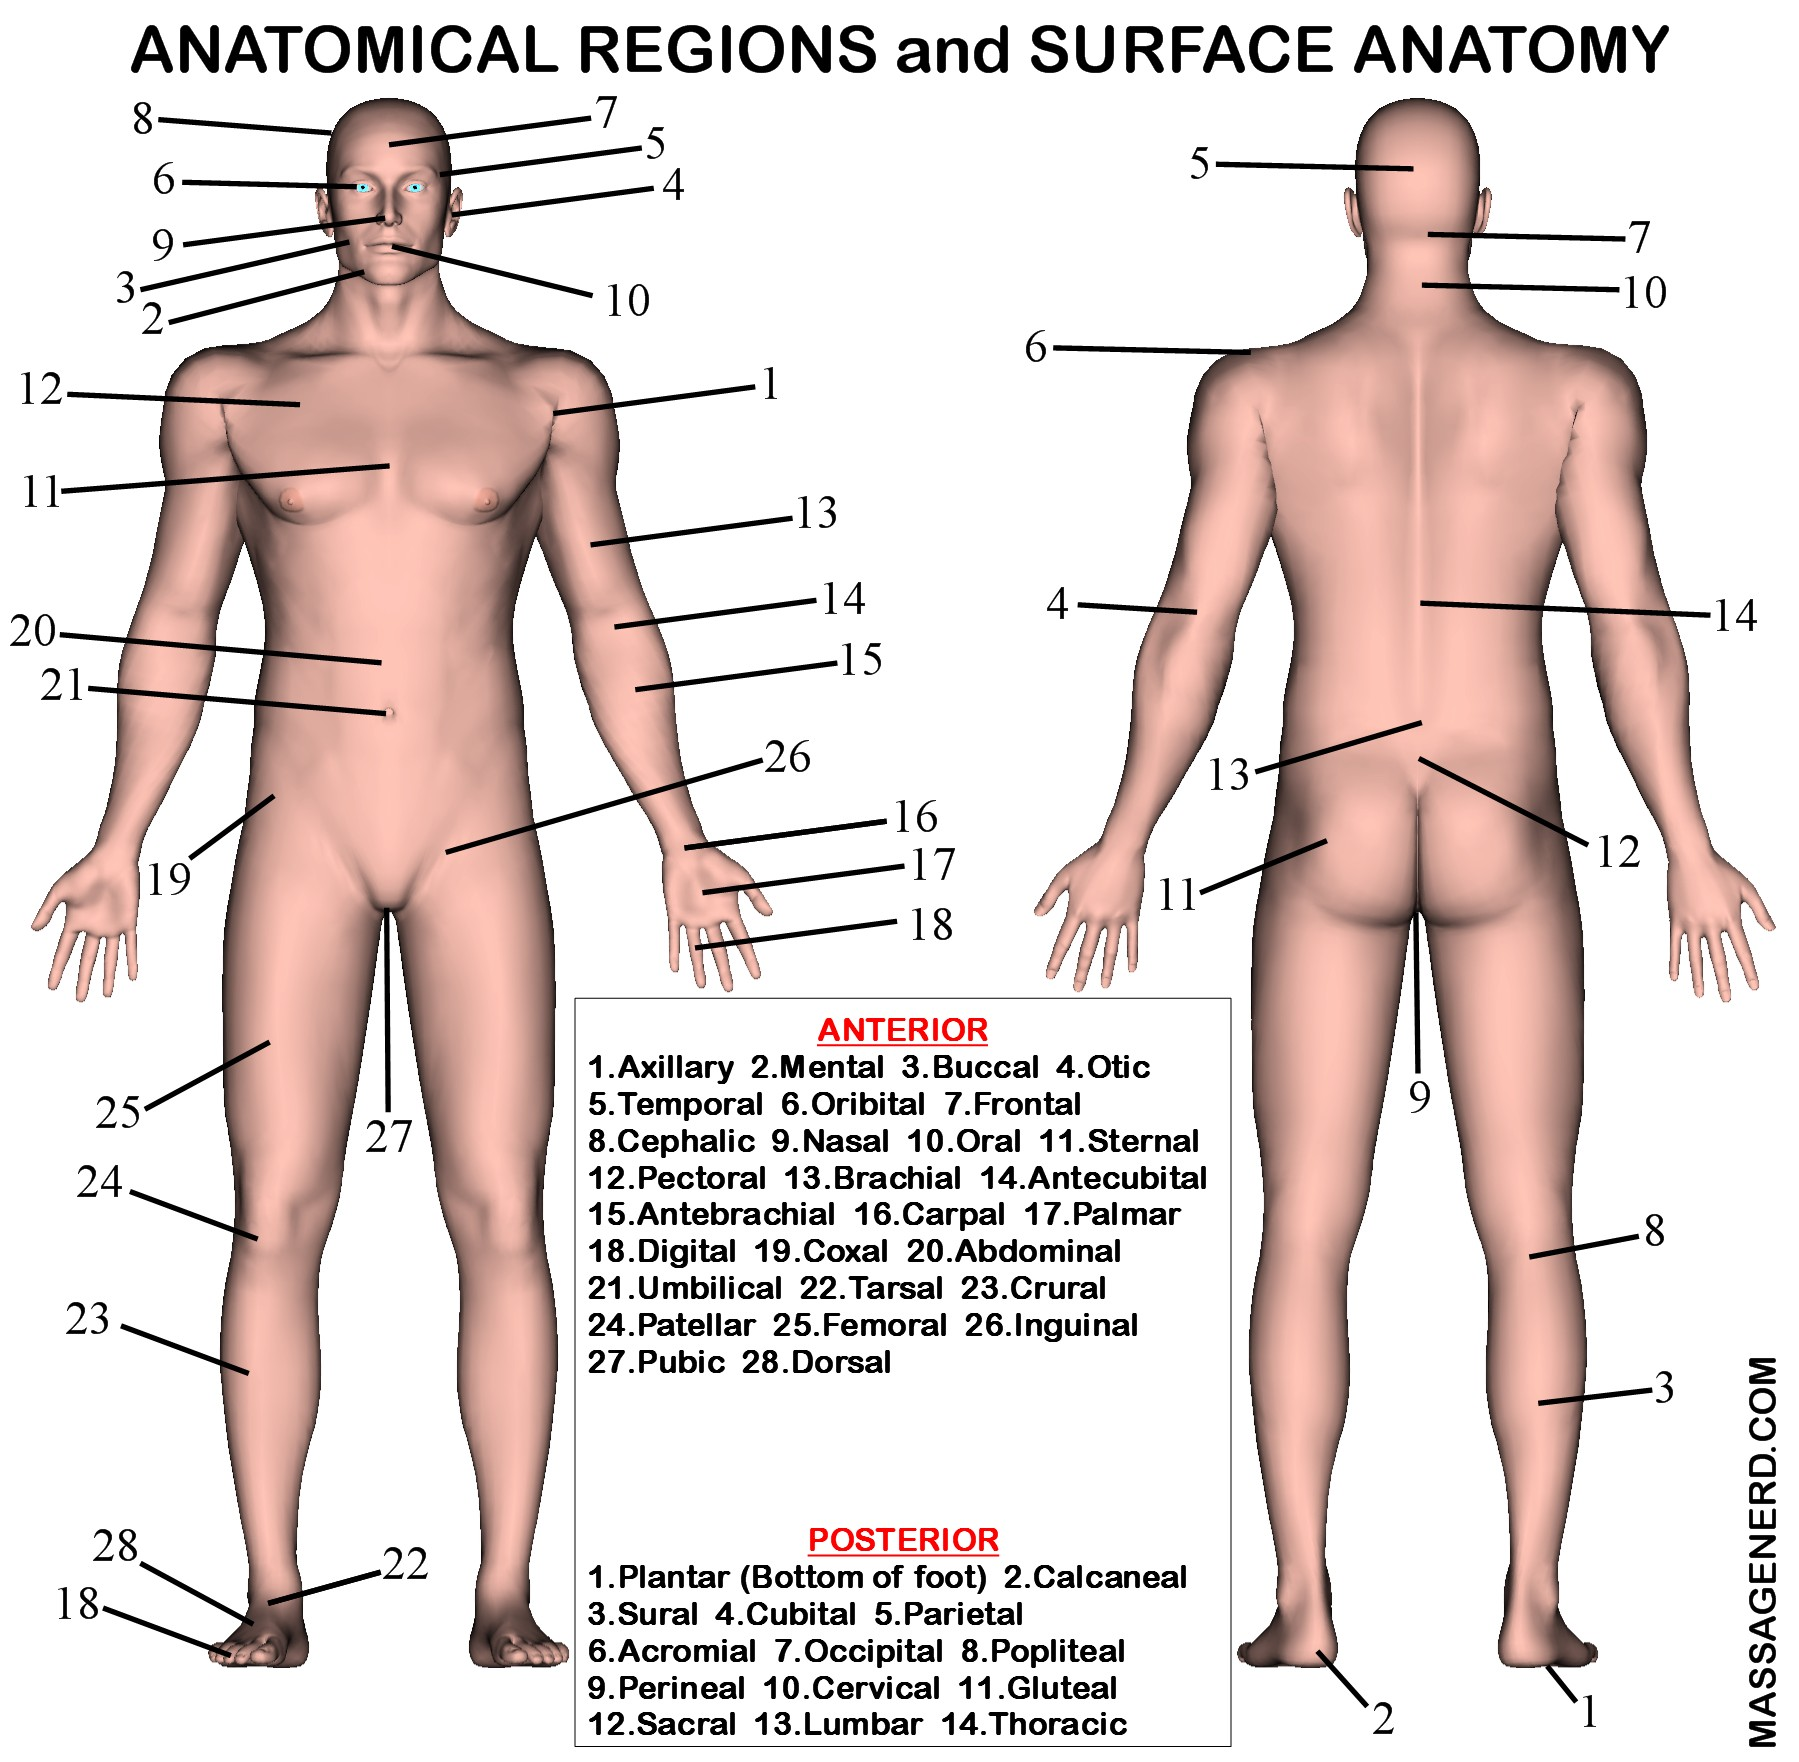 ANATOMY furthermore Anatomy Directional Terms As Applied To The Human Organism 3789888 moreover Index further Frog Muscle Diagram besides 17756. on dorsal and ventral cavities worksheet